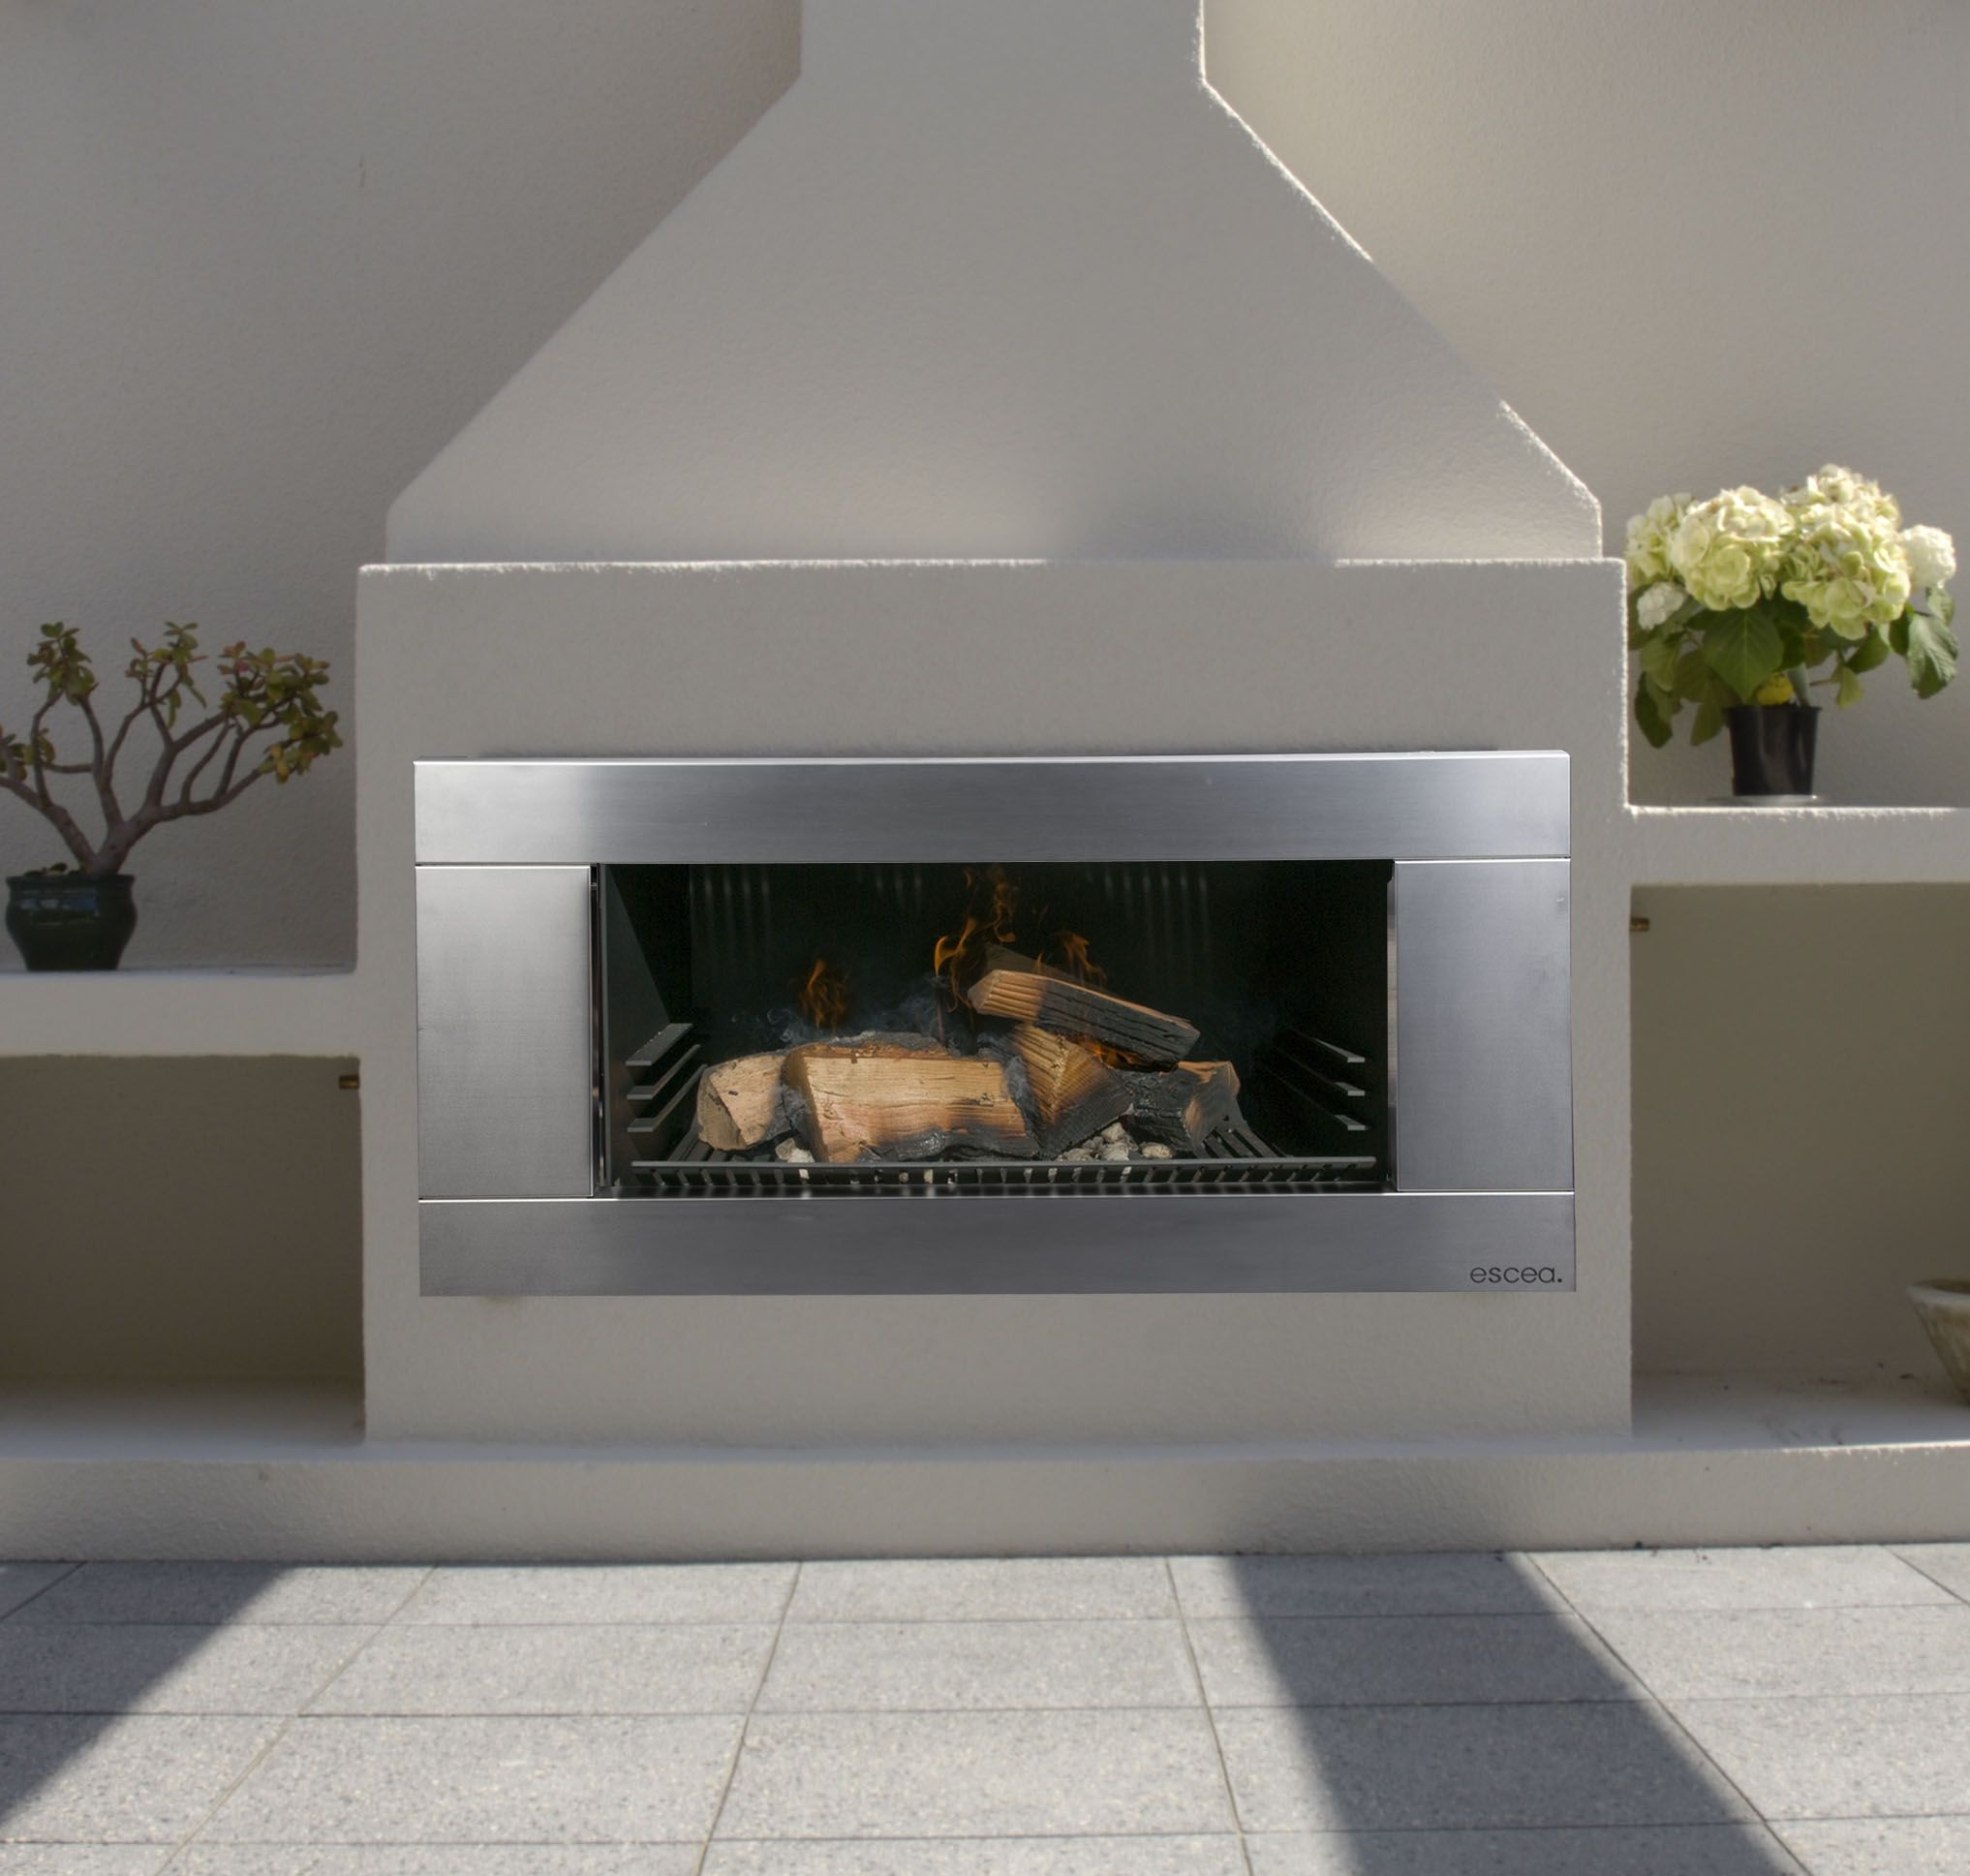 escea ew5000 outdoor wood fireplace escea ew5000 outdoor wood